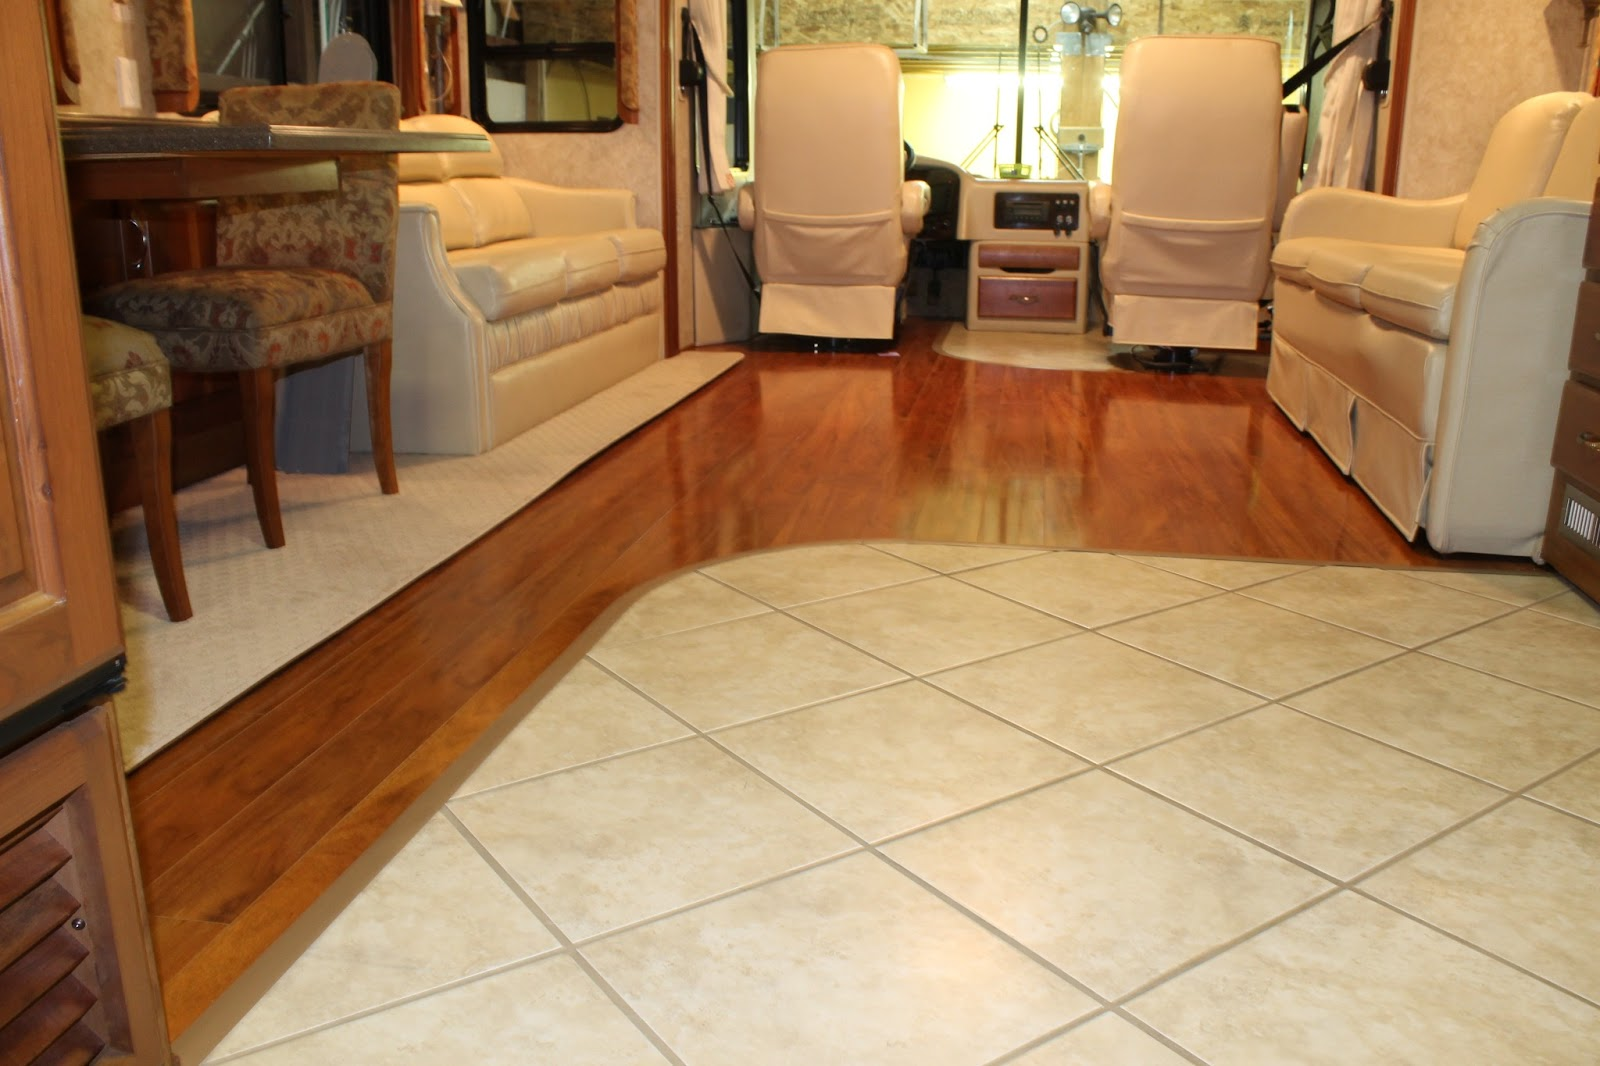 Countryside interiors transforming rvs and trailers for Rubber laminate flooring